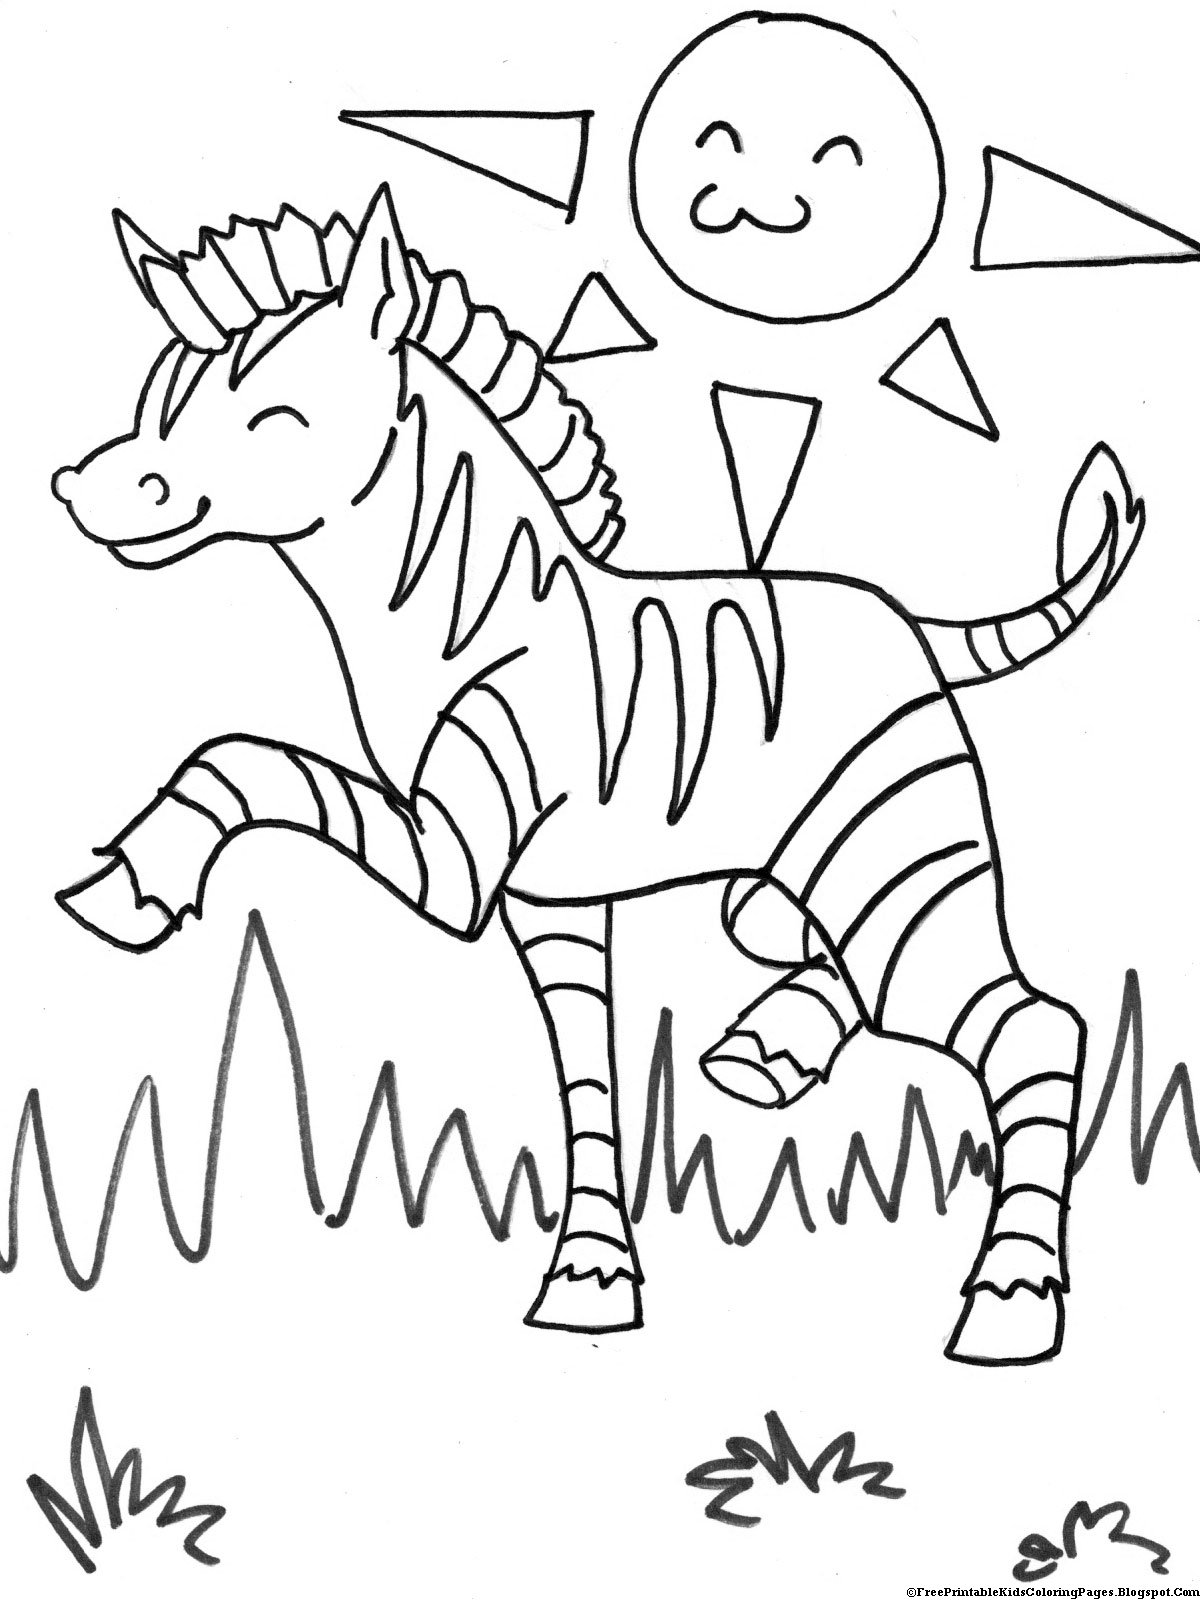 zebra coloring pages free printable zebra free printable templates coloring pages free printable coloring pages zebra